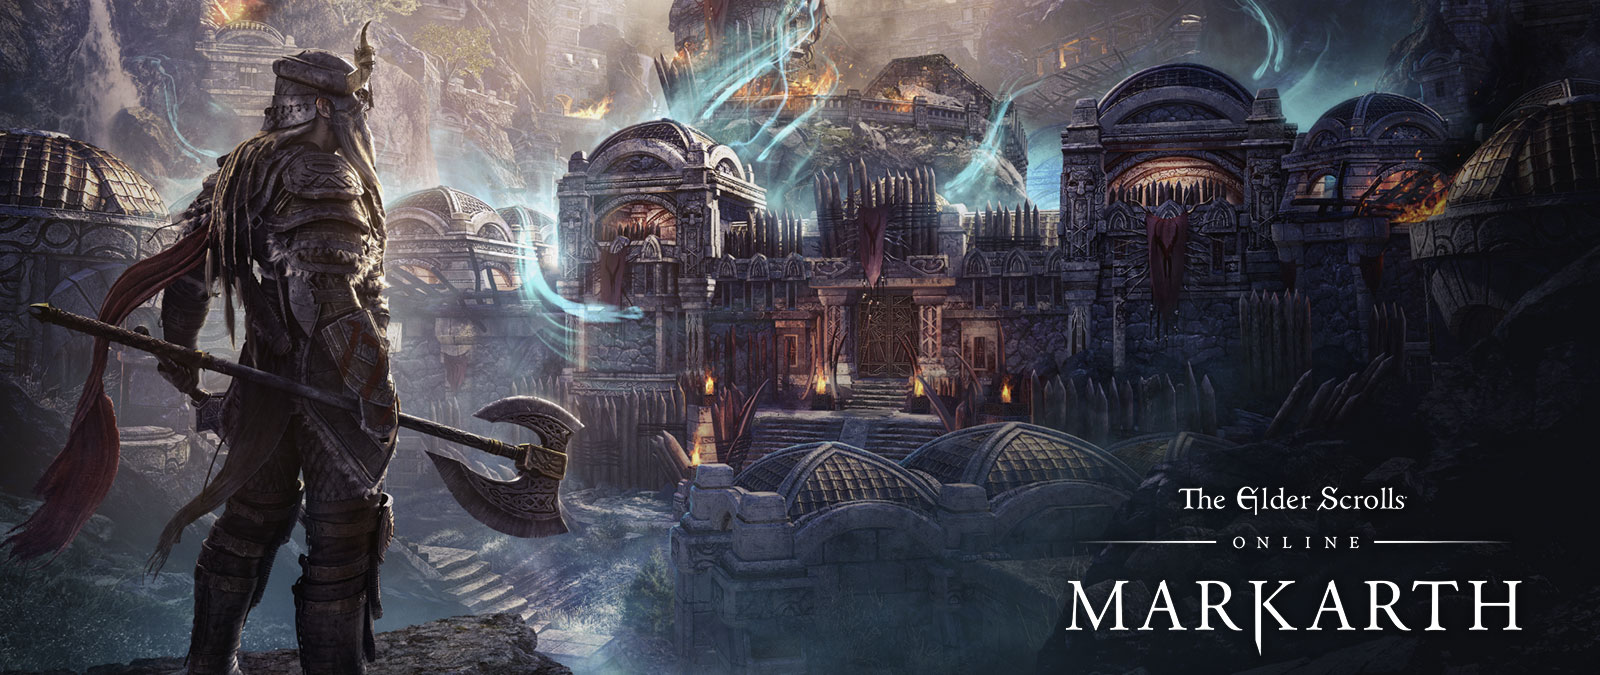 The Elder Scrolls Online Markarth. A character with armour stands with an axe looking at a city